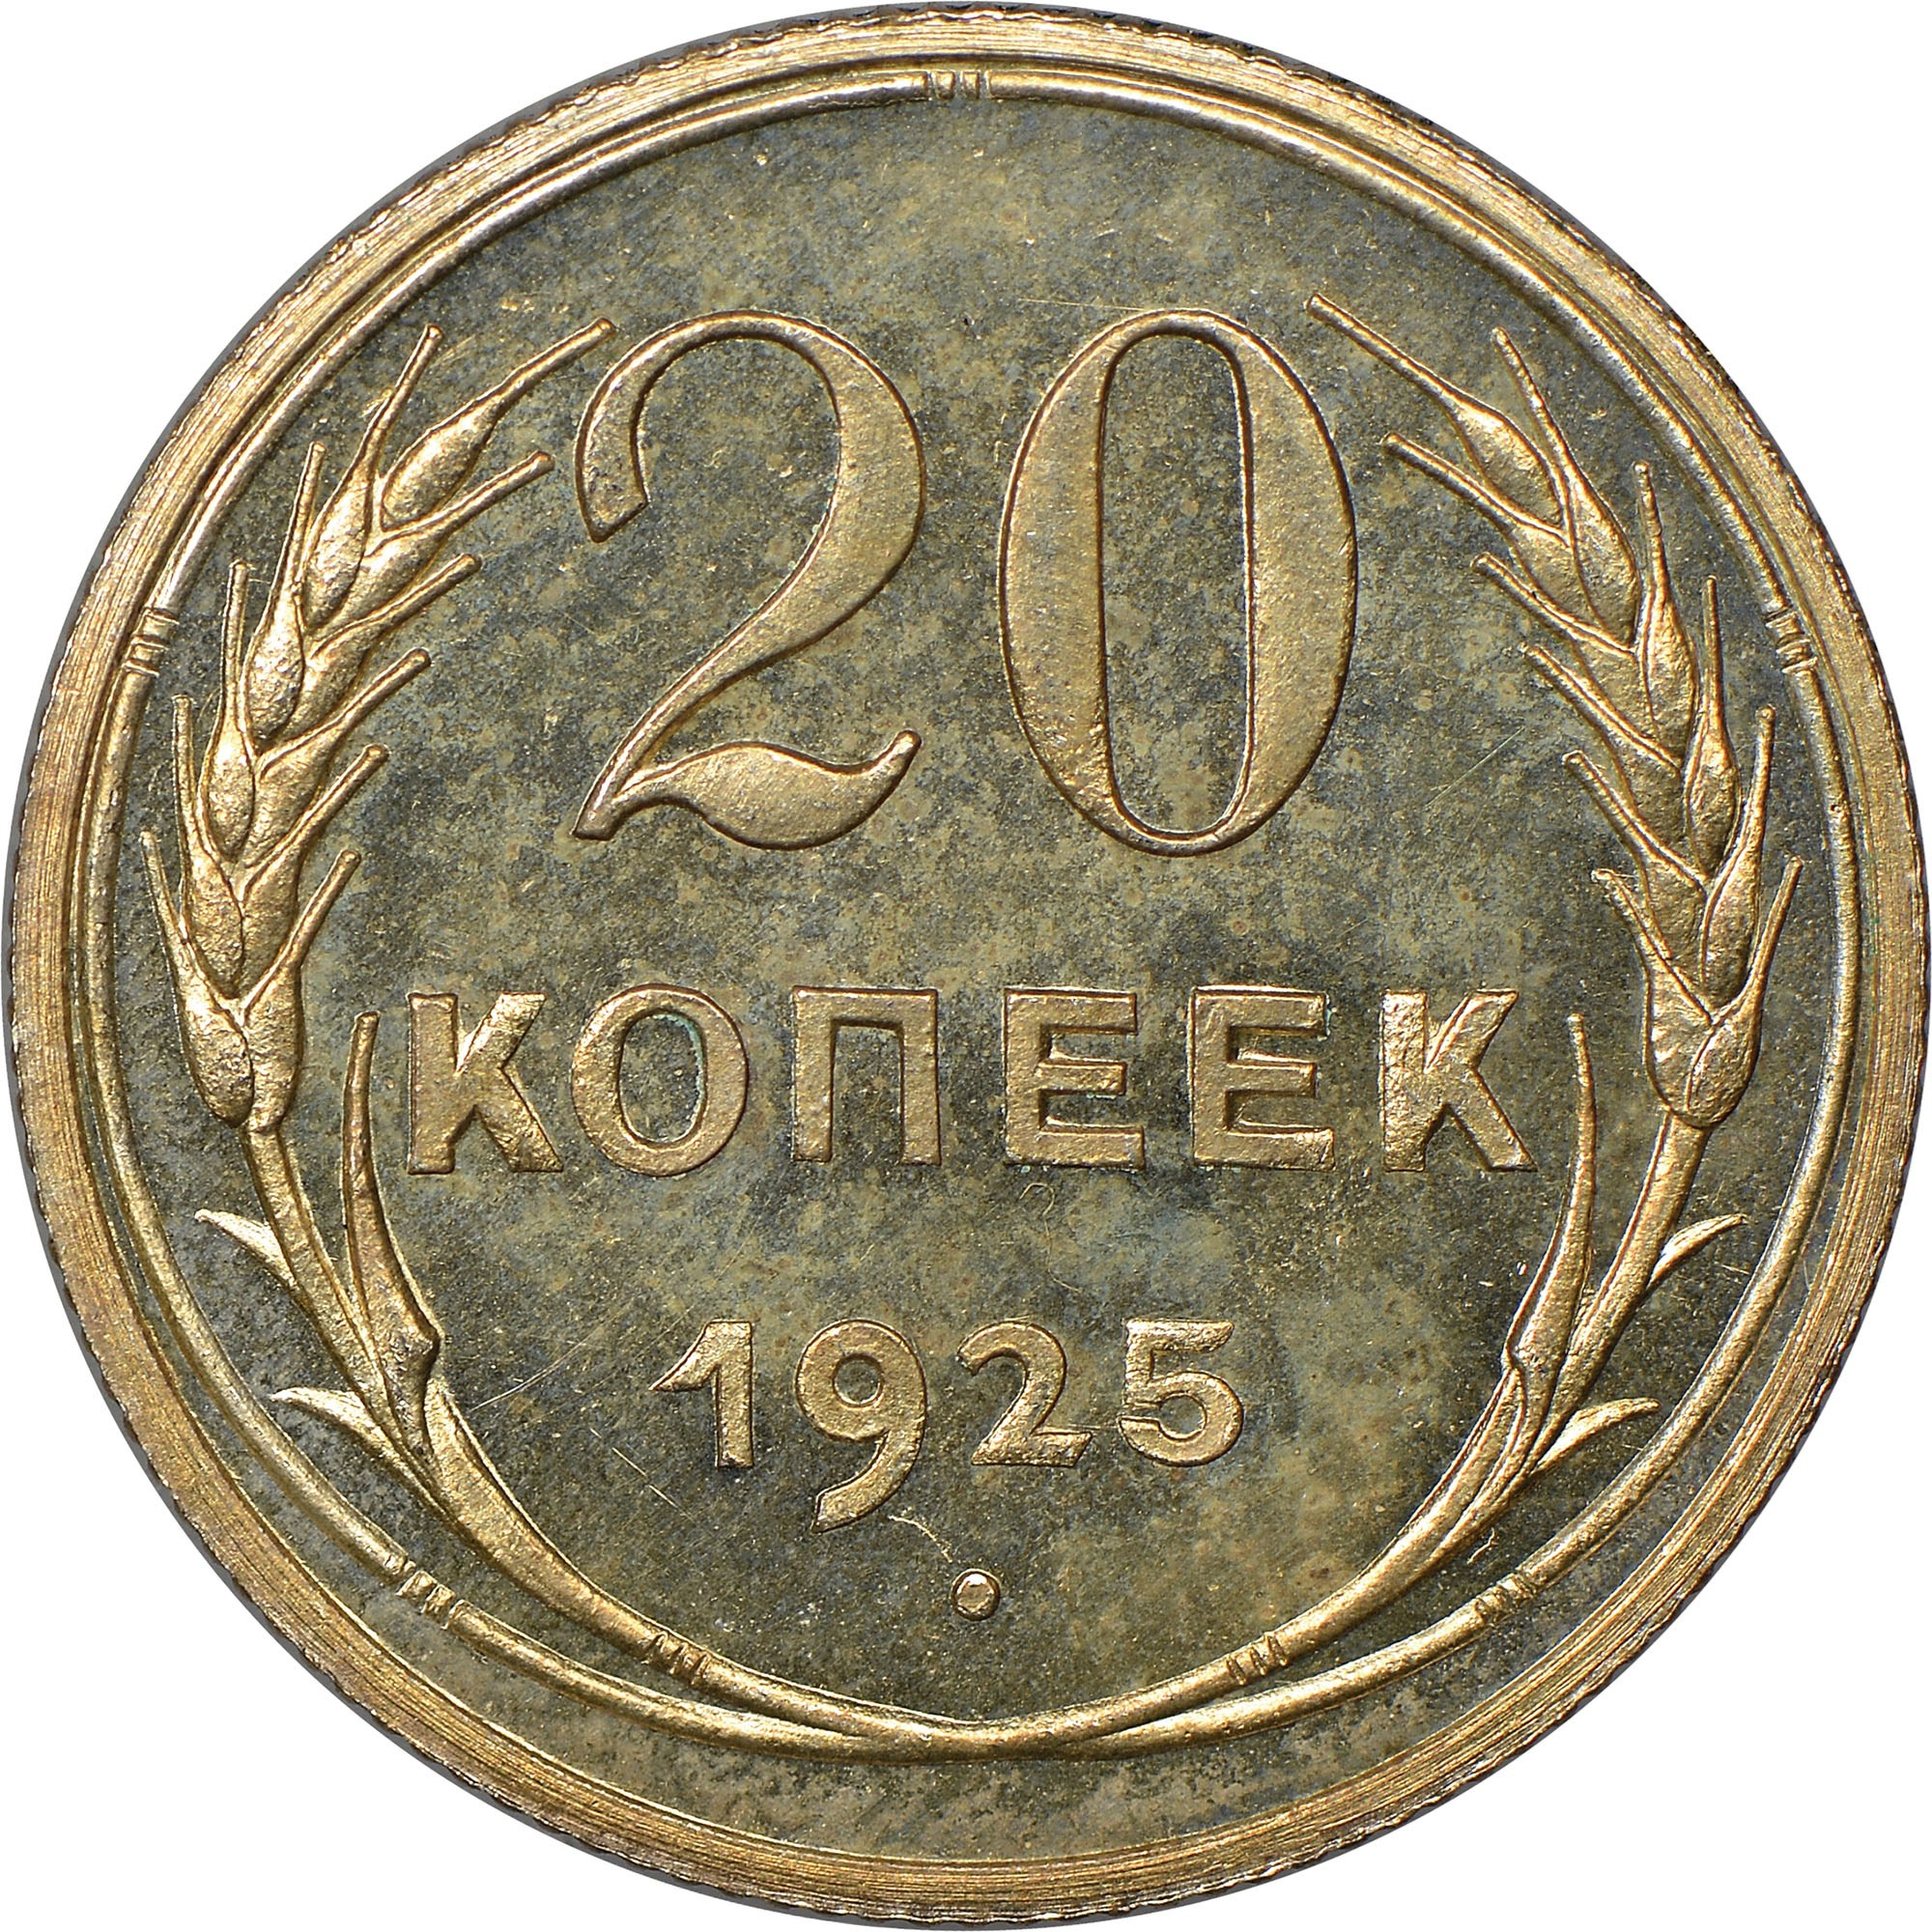 Coin 20 kopecks in 1961. The cost of coins of the USSR. Species 10